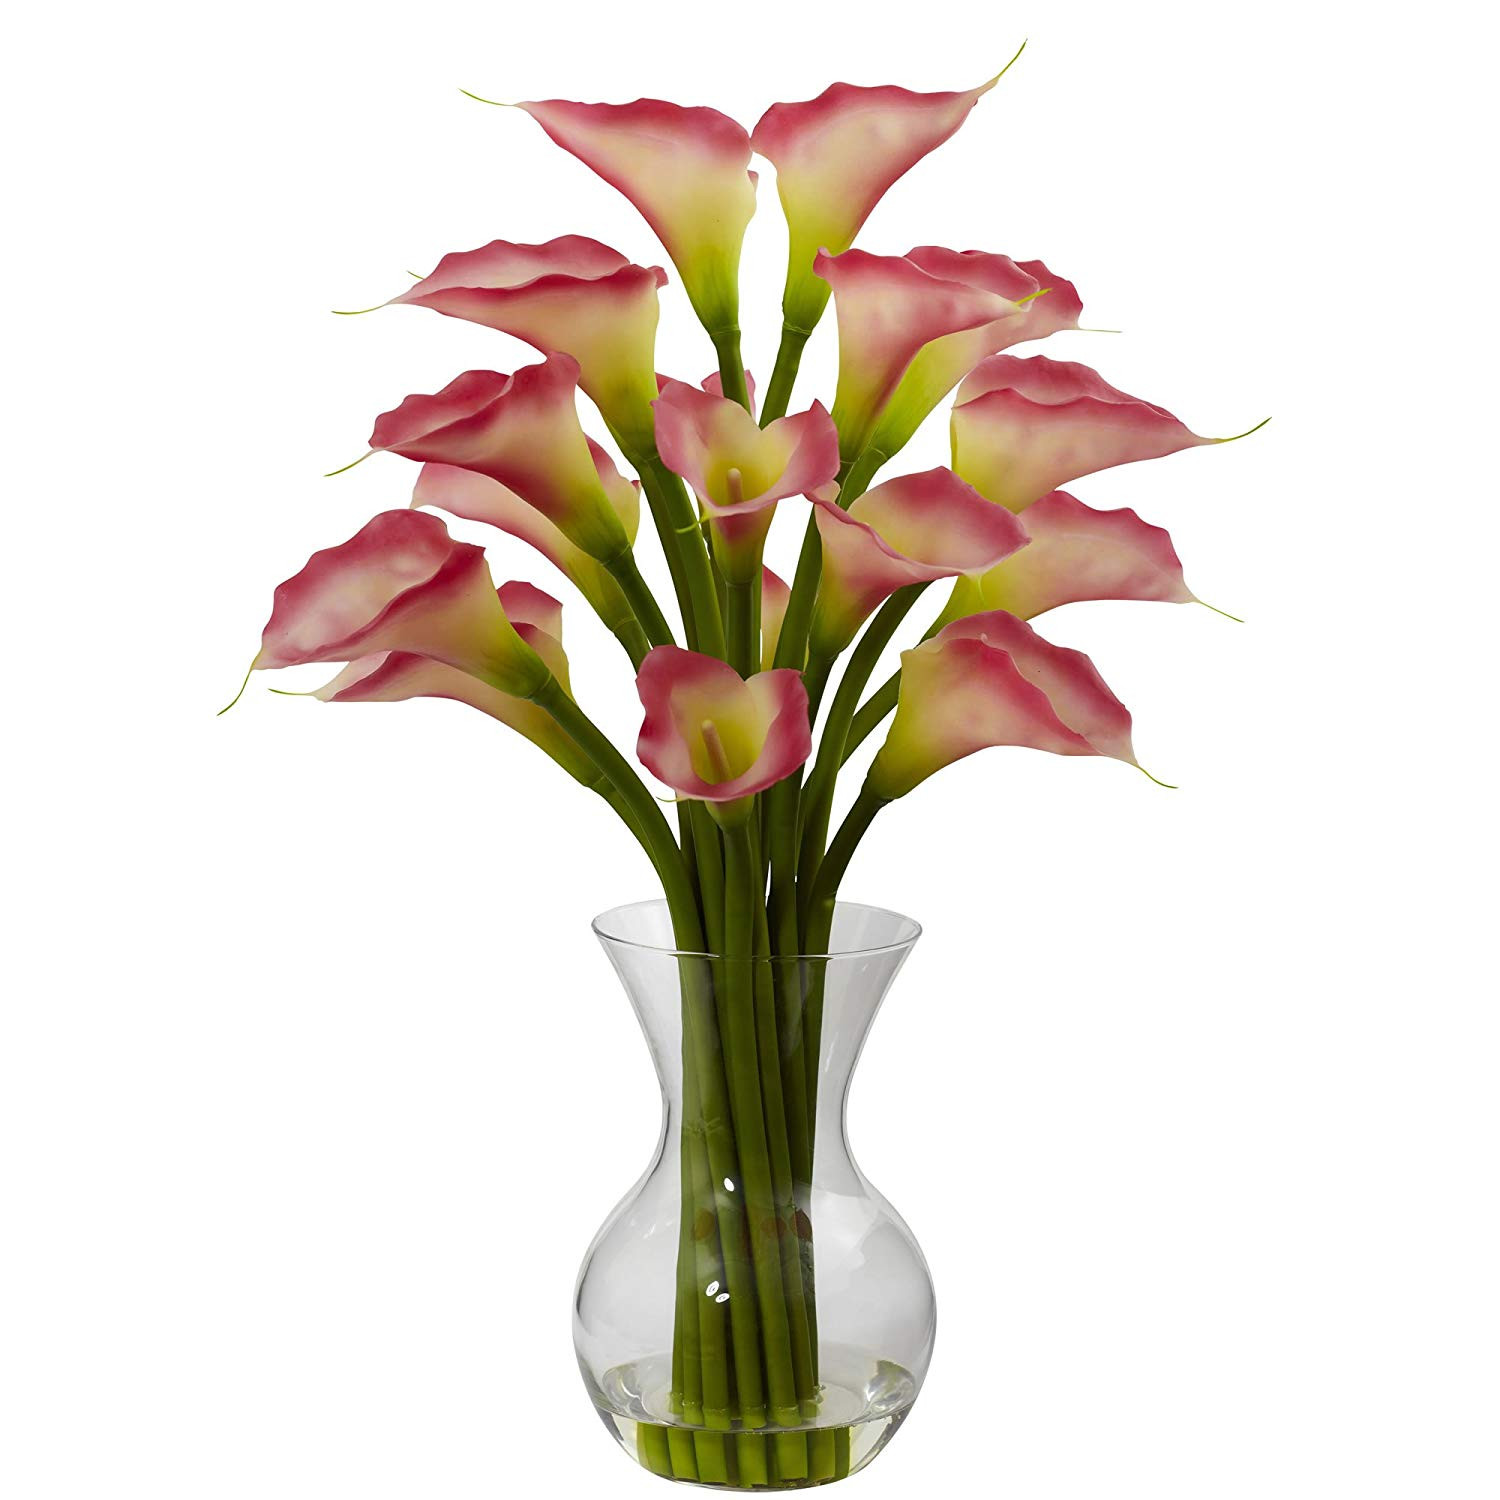 Faux Hydrangea Arrangement In Clear Glass Vase Of Amazon Com Nearly Natural 1299 Cr Galla Calla Lily with Vase In Amazon Com Nearly Natural 1299 Cr Galla Calla Lily with Vase Arrangement Cream Home Kitchen